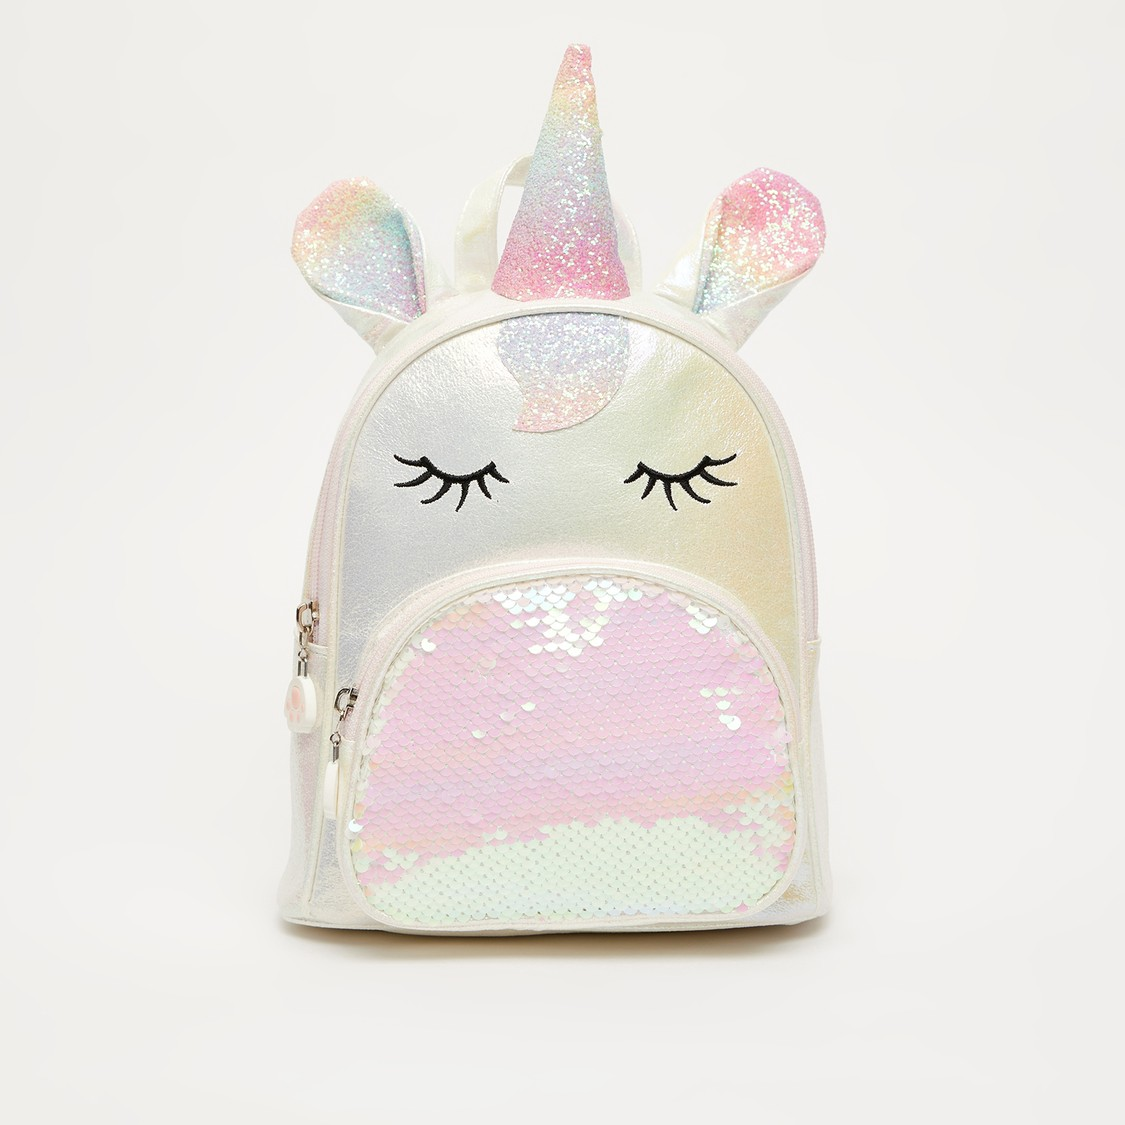 Sequin Detail Backpack with Adjustable Strap and Zip Closure